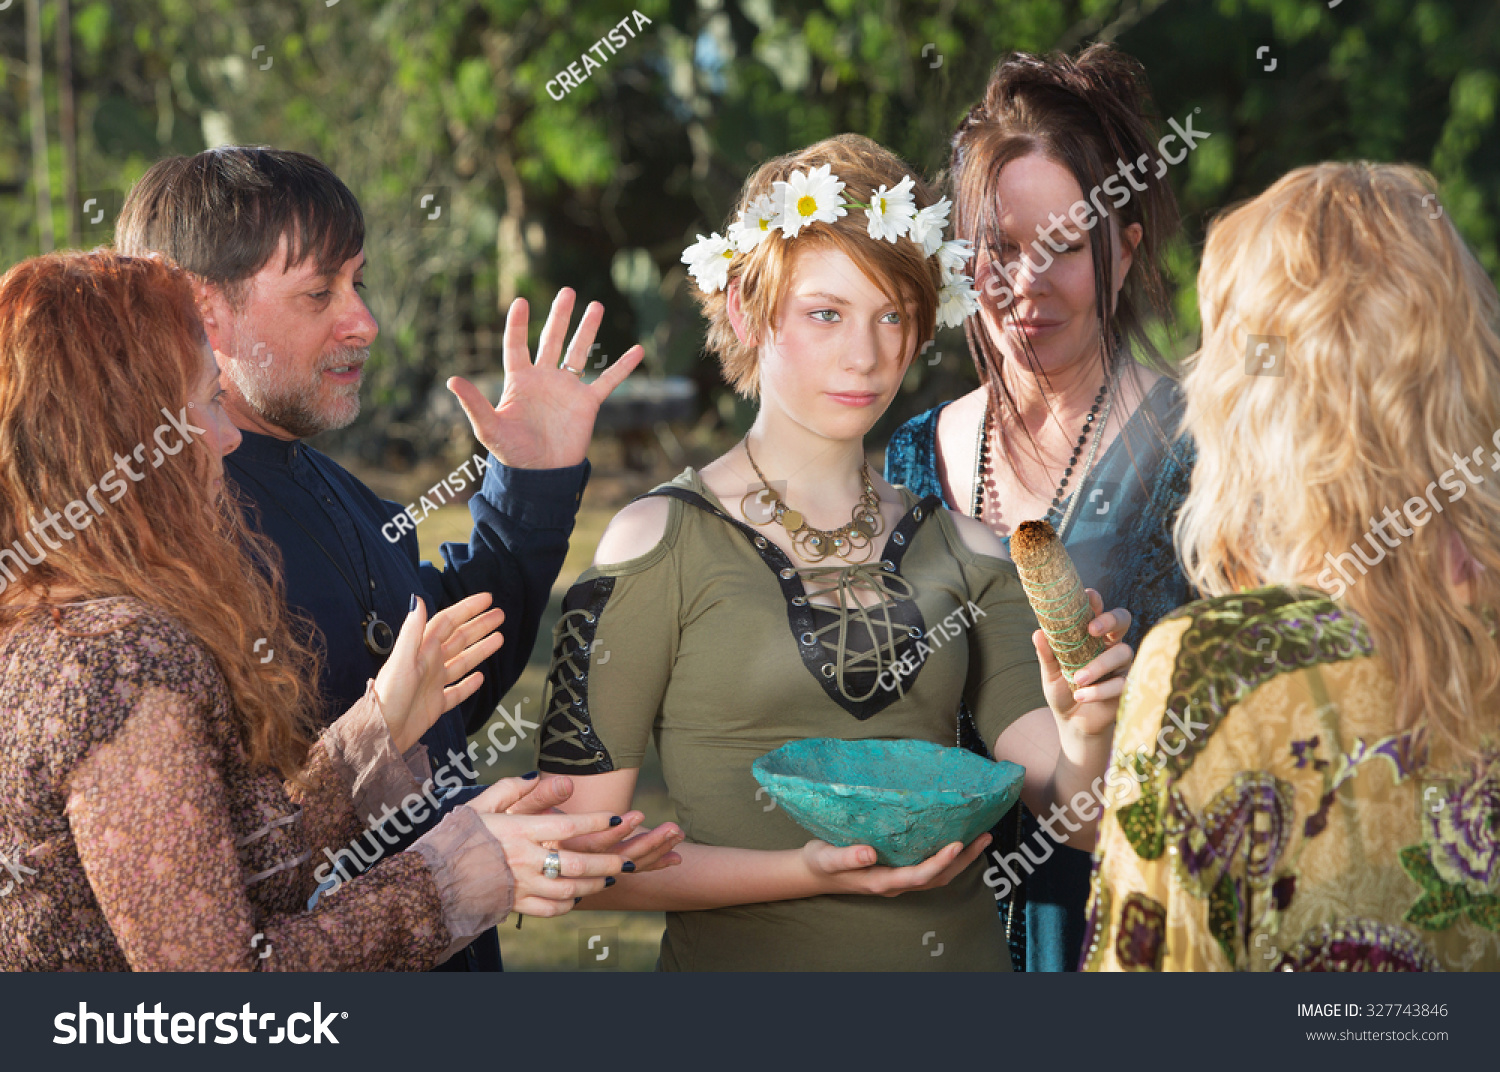 Group of witches outdoors doing an initiation ritual